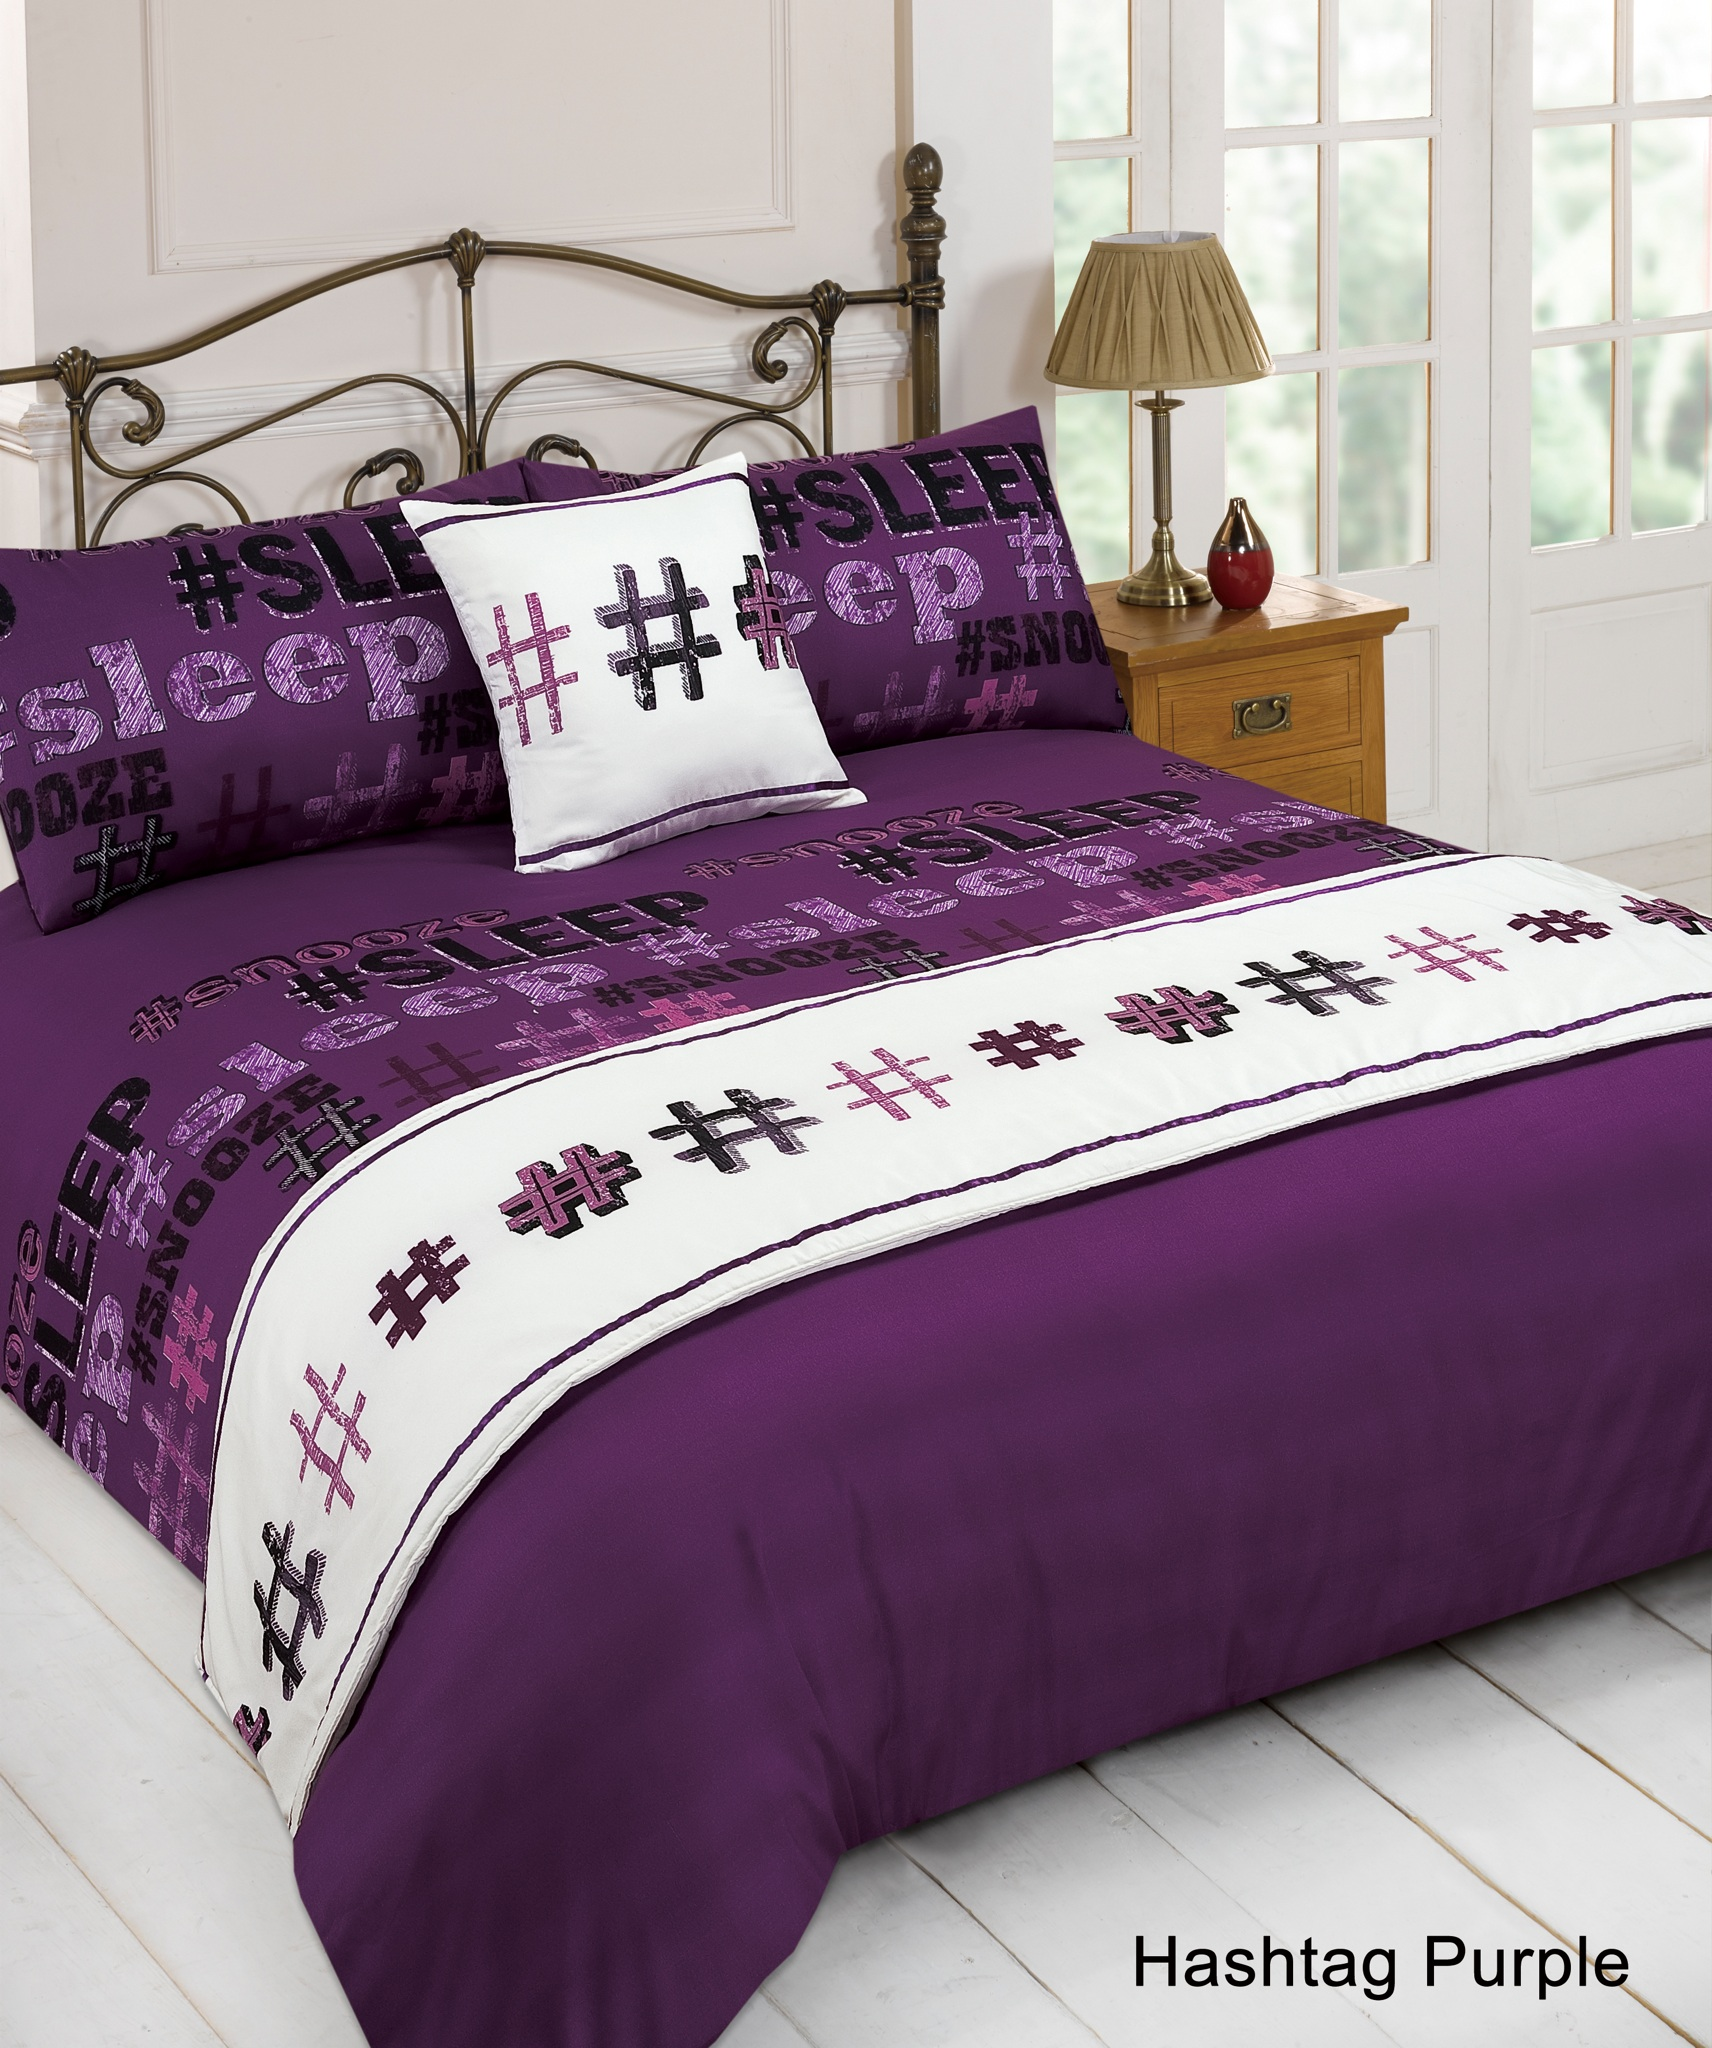 5pc Bed In A Bag Bedding Duvet Cover Quilt Set Hashtag